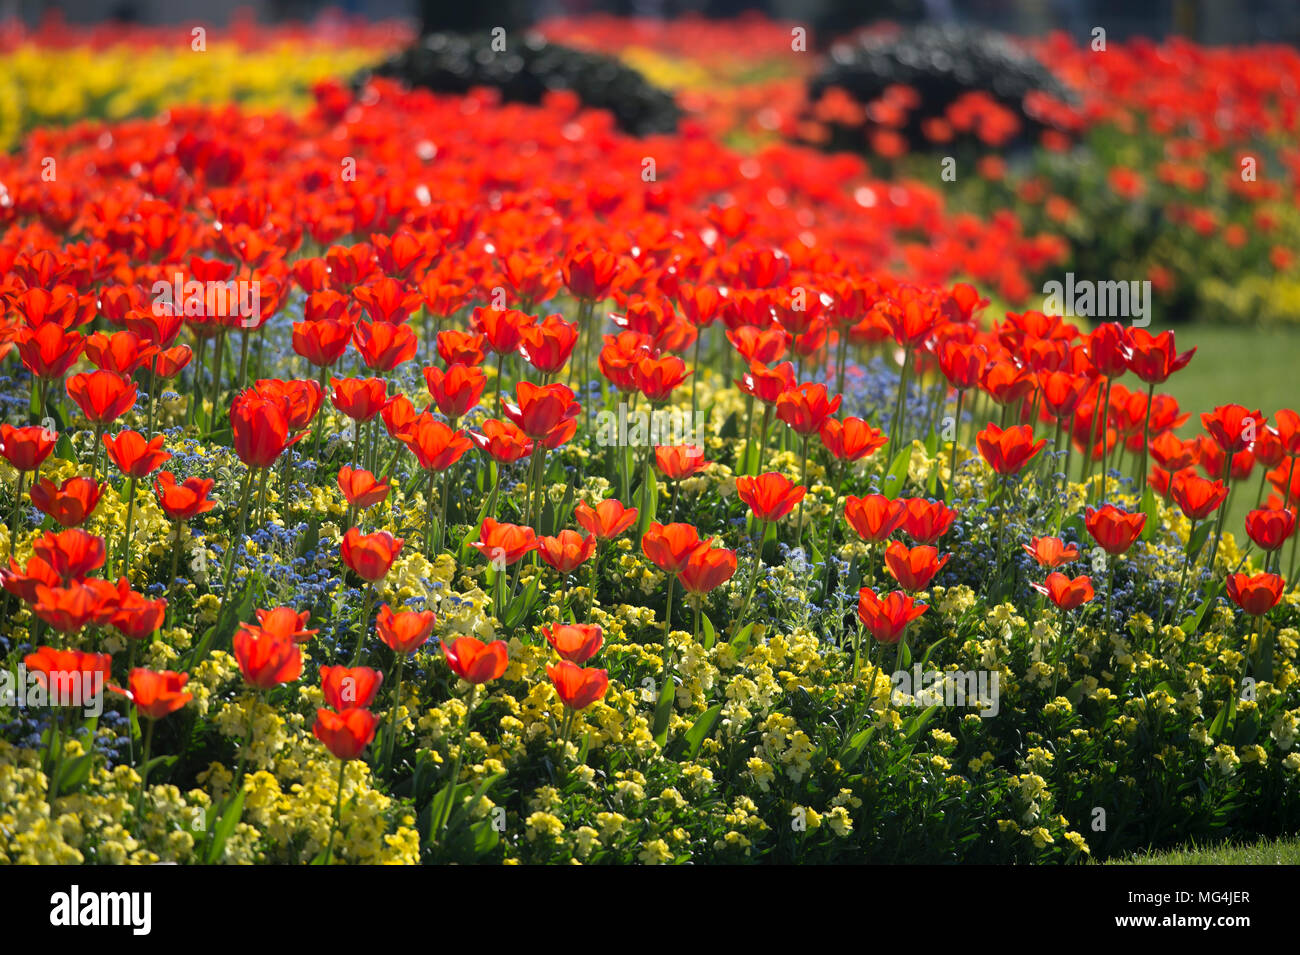 April 2018. Hot Spring weather in Green Park with tulips on display outside Buckingham Palace, London, UK - Stock Image